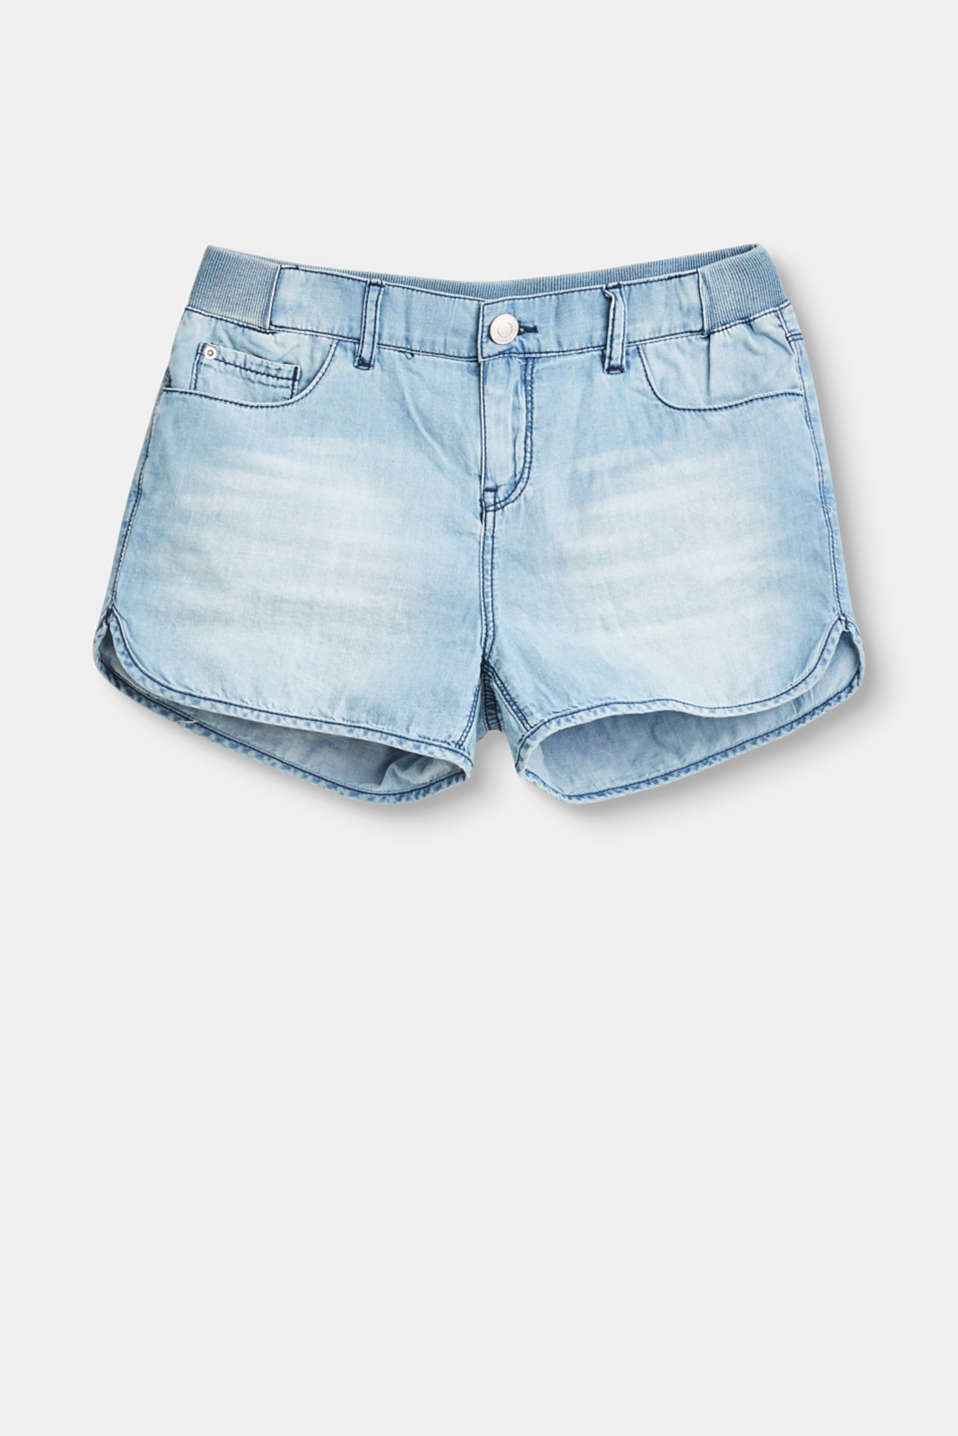 Esprit - Soft shorts in a denim look with an elasticated waistband